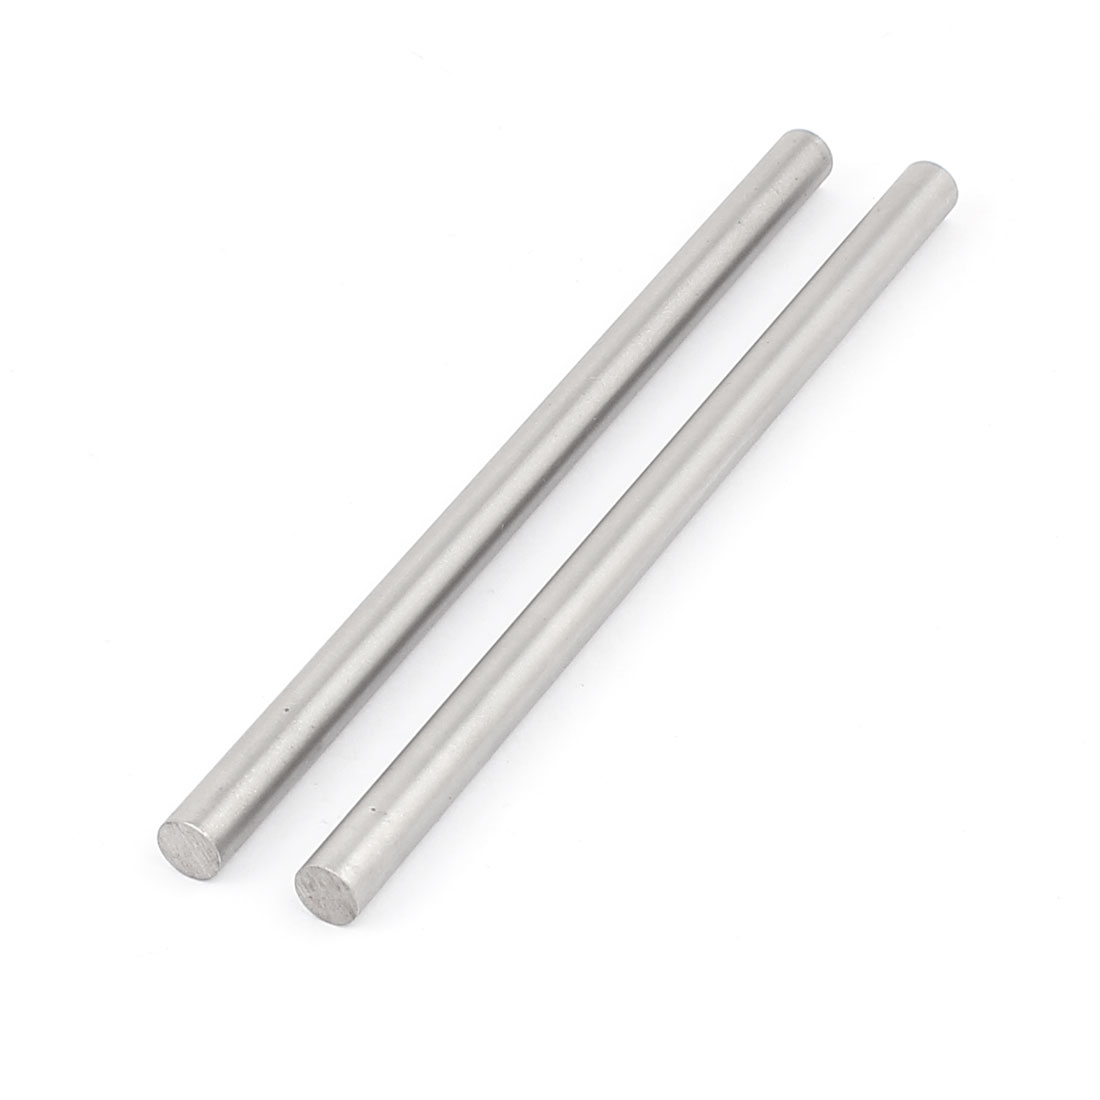 2 Pcs 8mm x 150mm DIY RC Car Toy Model Straight Metal Round Shaft Rod Bars